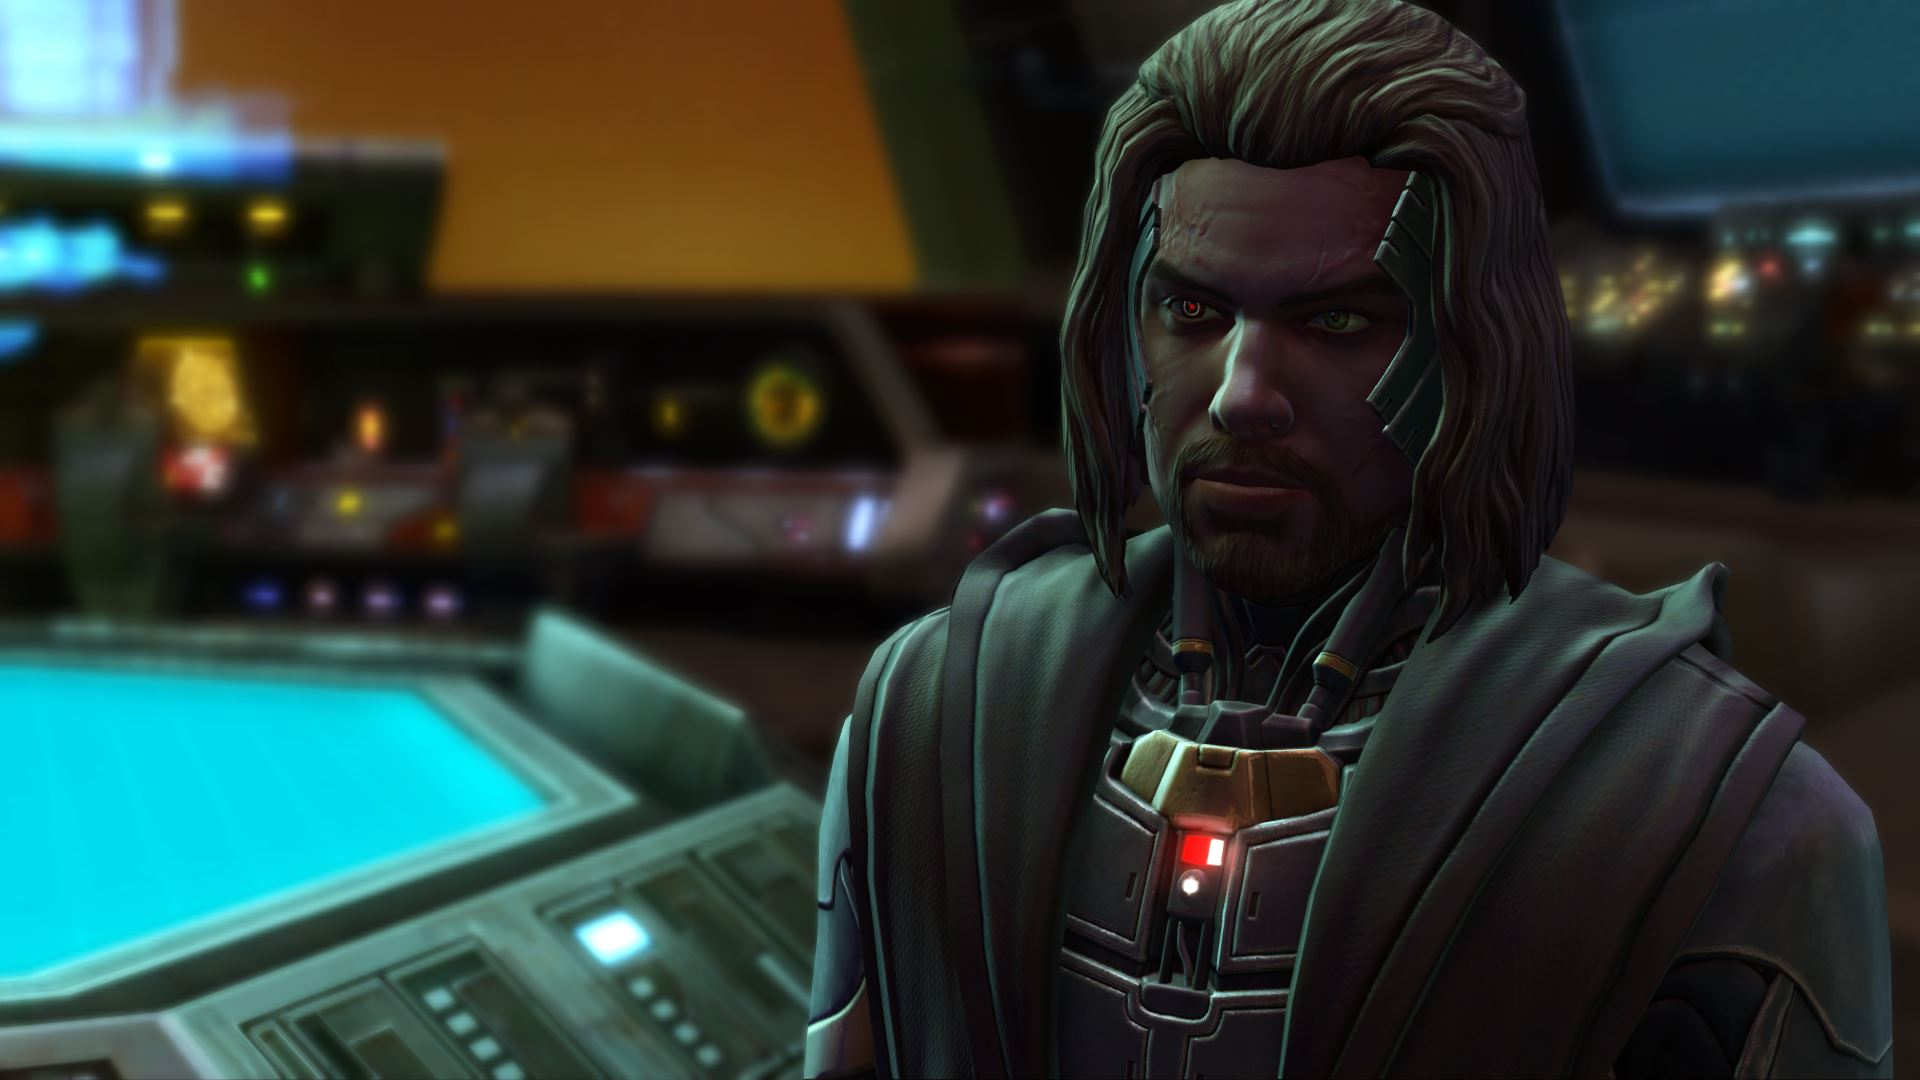 The Old Republic On Twitter Introduced With The Onslaught Expansion Padawan Arn Peralun Joins Jedi Knight Tau Idair On The Frontlines Recognizing His Potential Master Gnost Dural Has Made His Training Top Priority